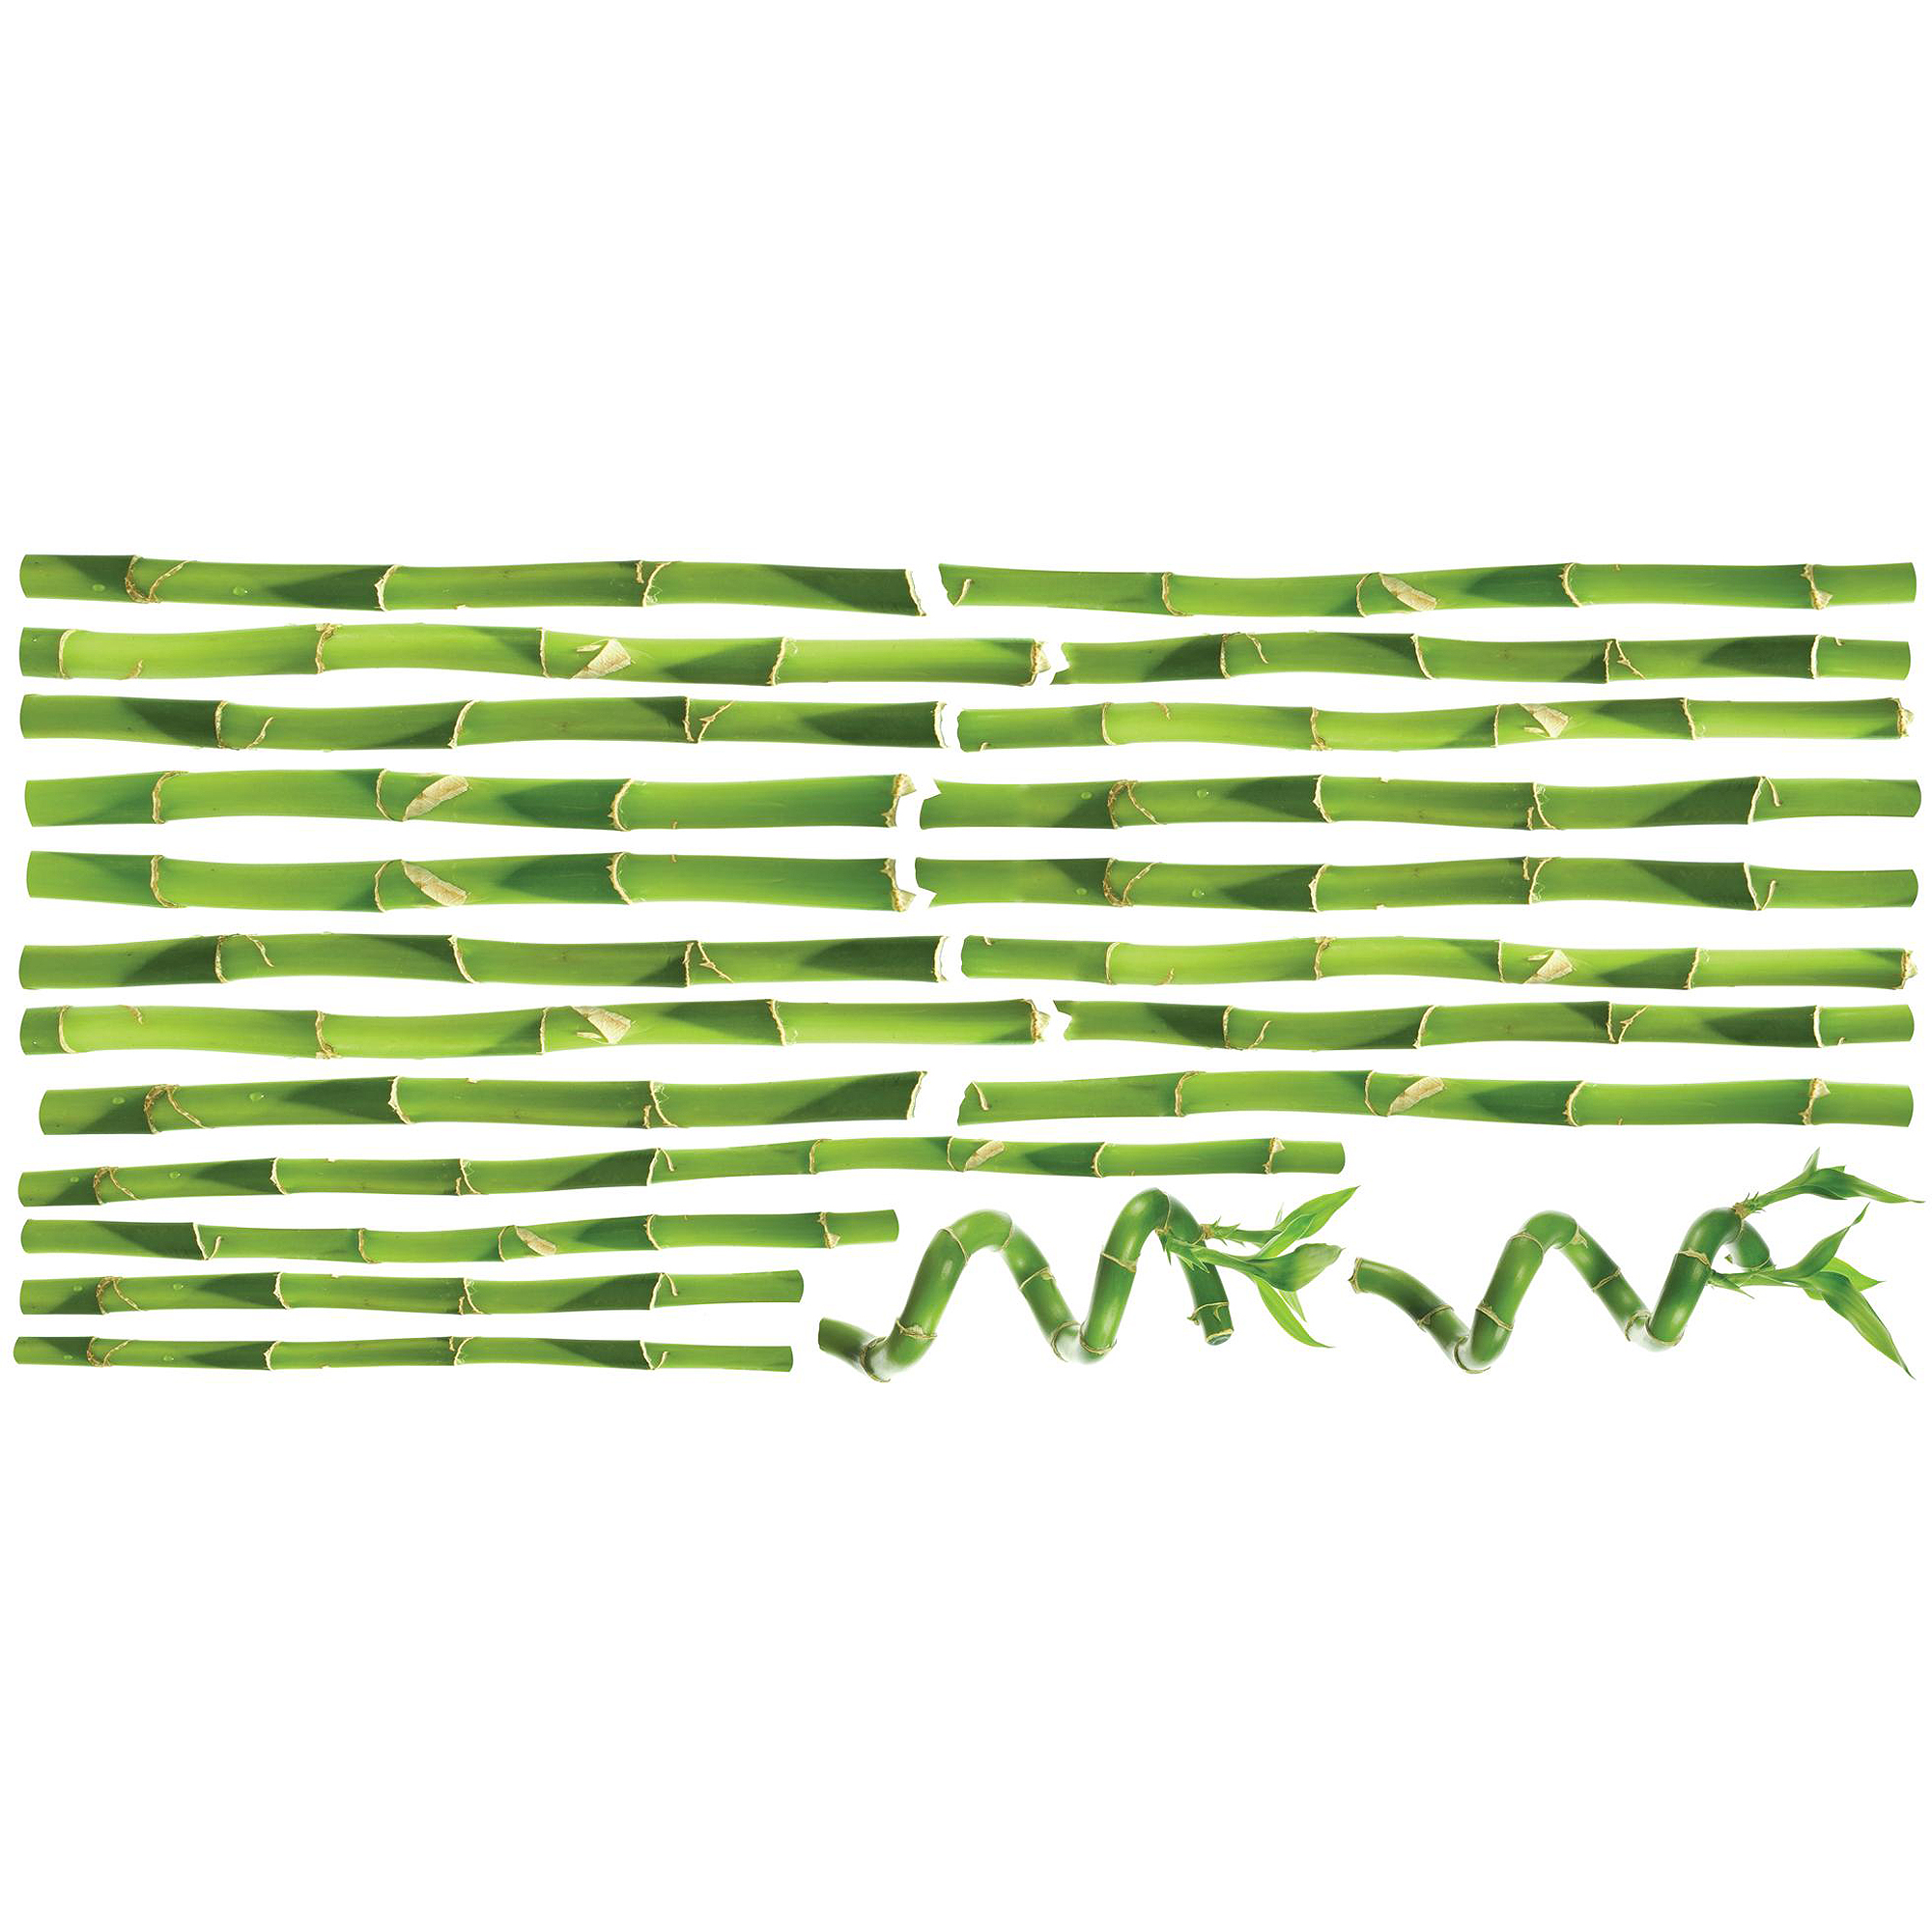 RoomMates Bamboo Peel and Stick Wall Decals